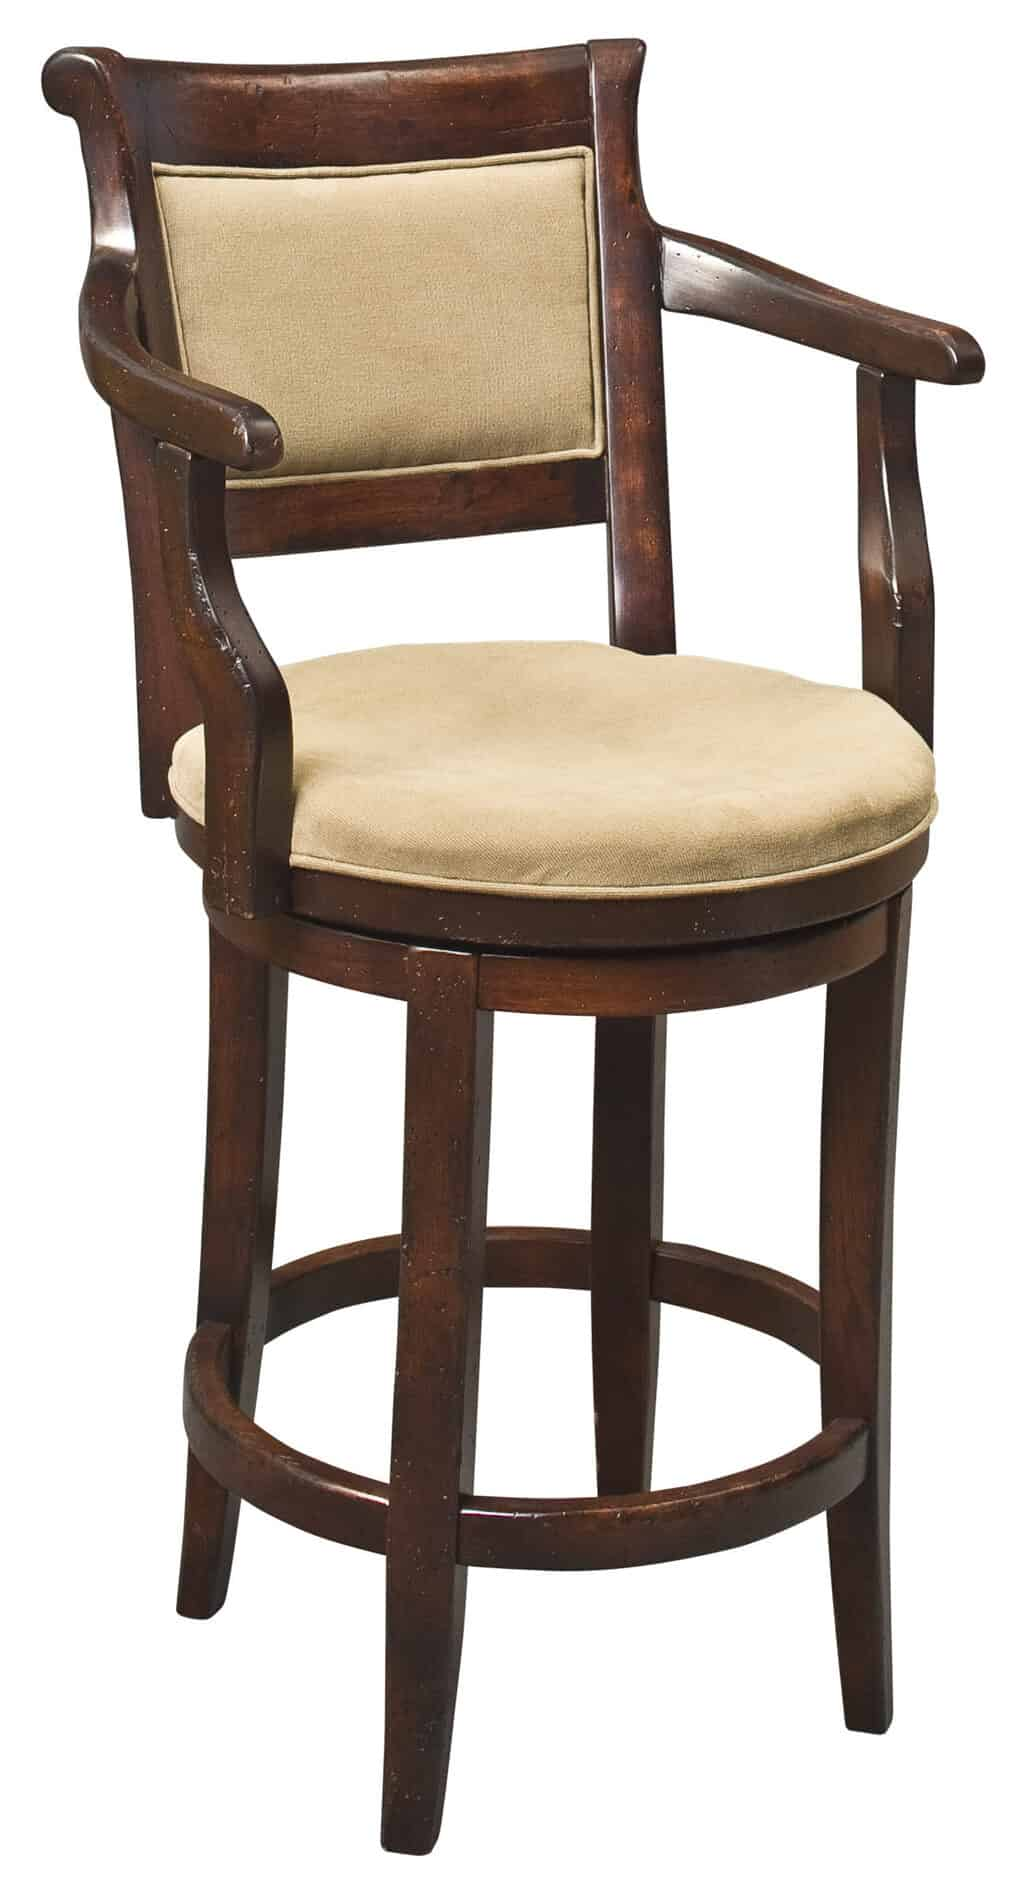 Swivel West Chester Arm Stool Image